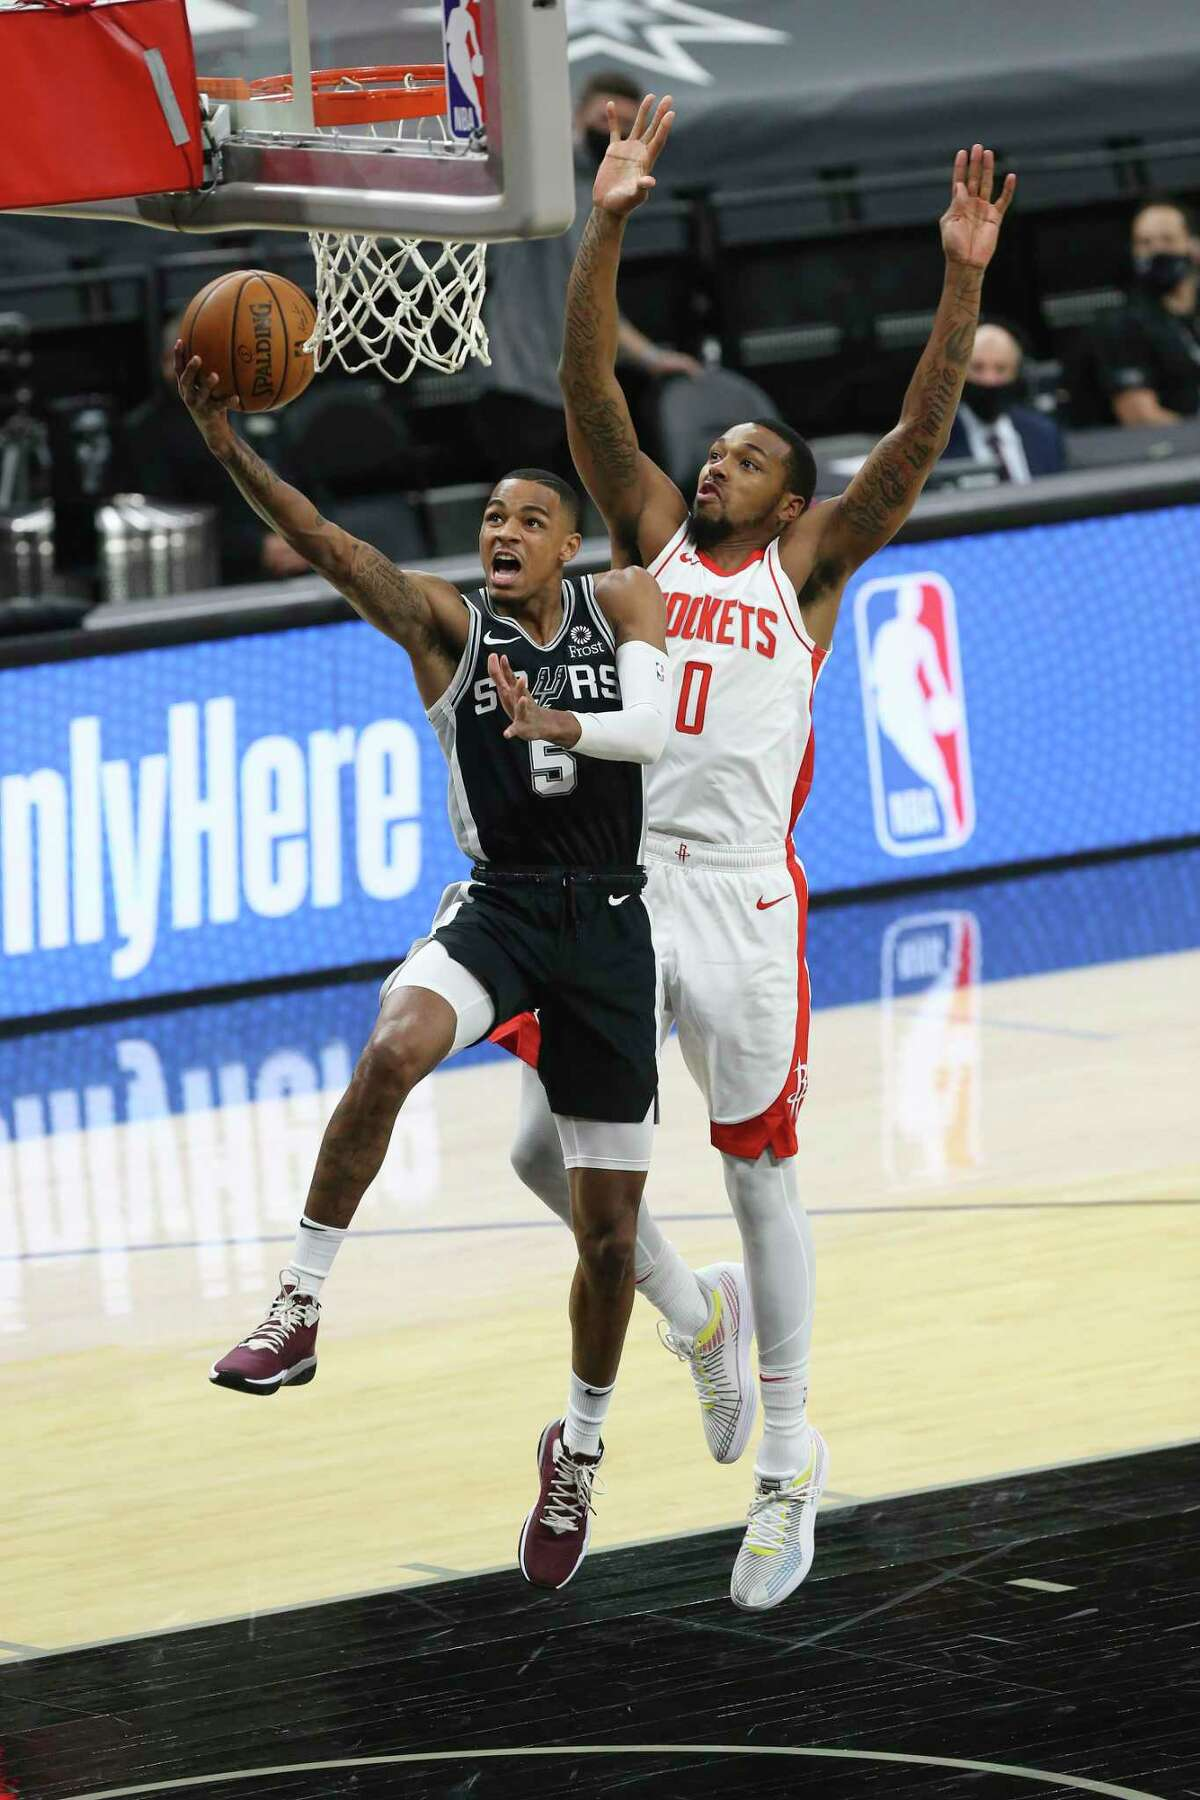 San Antonio Spurs' Dejounte Murray gets by Houston Rockets' Sterling Brown during the first quarter at the AT&T Center, Thursday, Jan. 14, 2021.